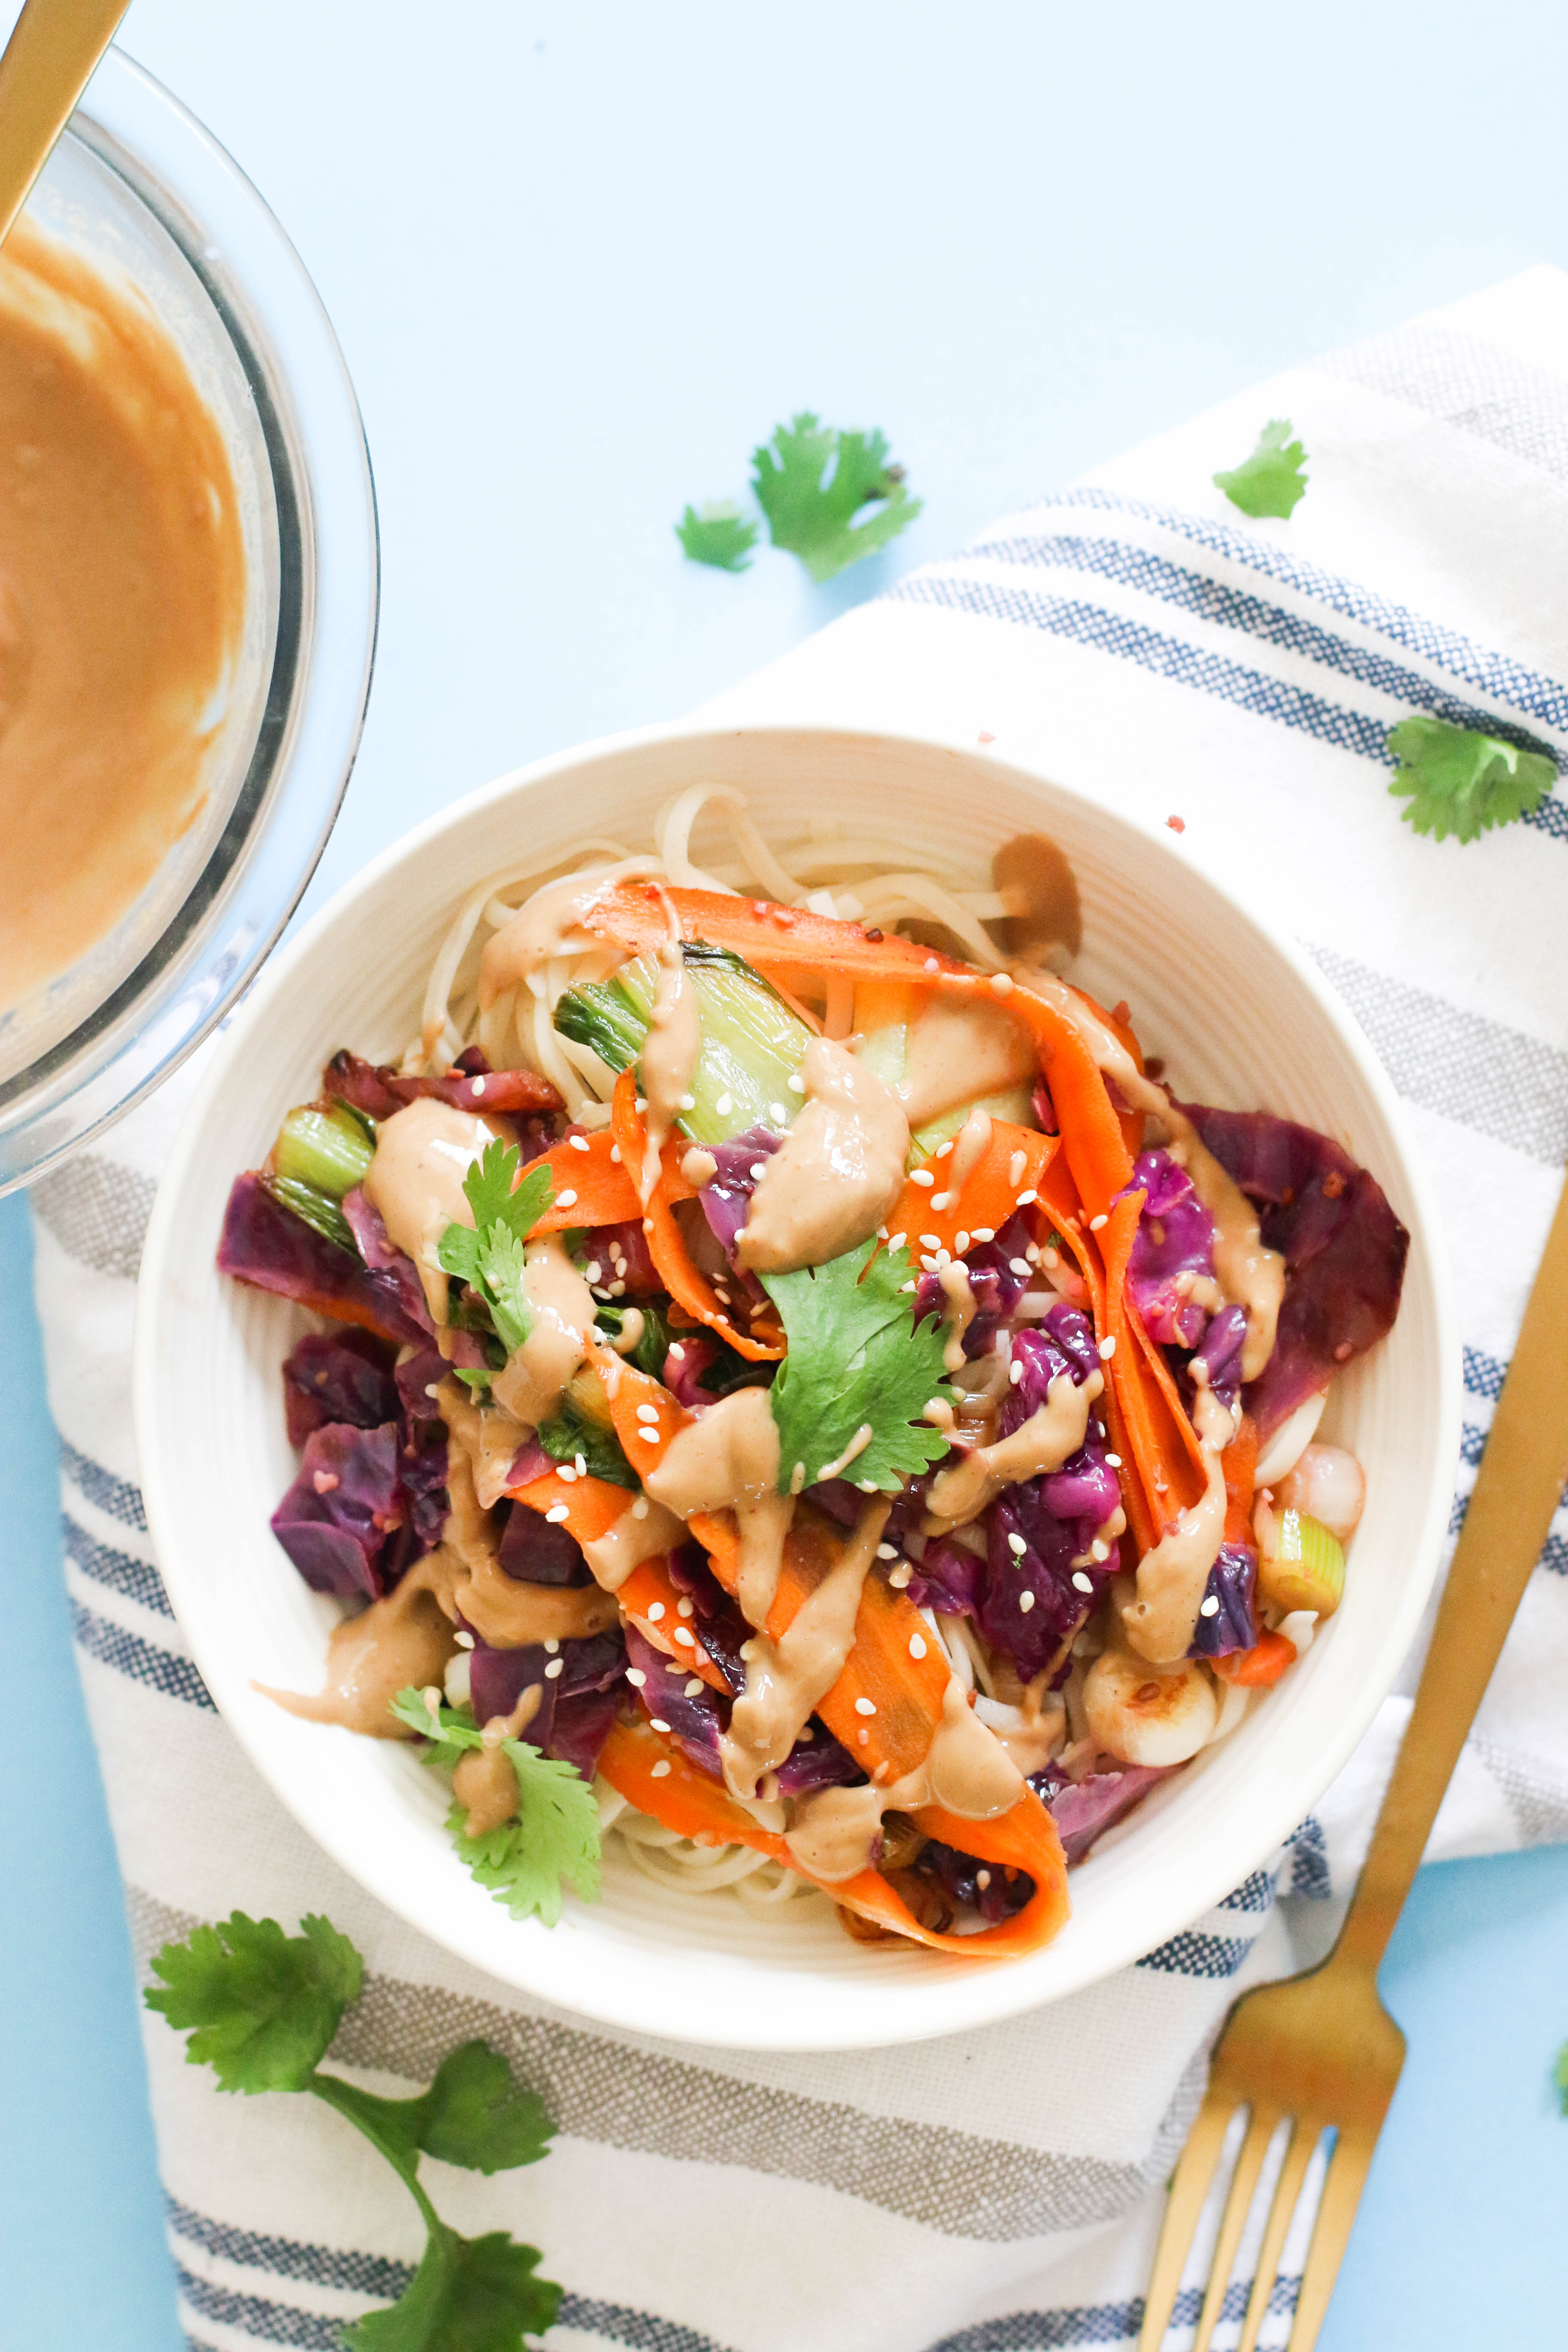 This 20 minute vegetable pad Thai is vegan, gluten free, protein packed, and filled with flavor! Made with minimal ingredients and filled with nutrients, it's a delicious week night dinner.